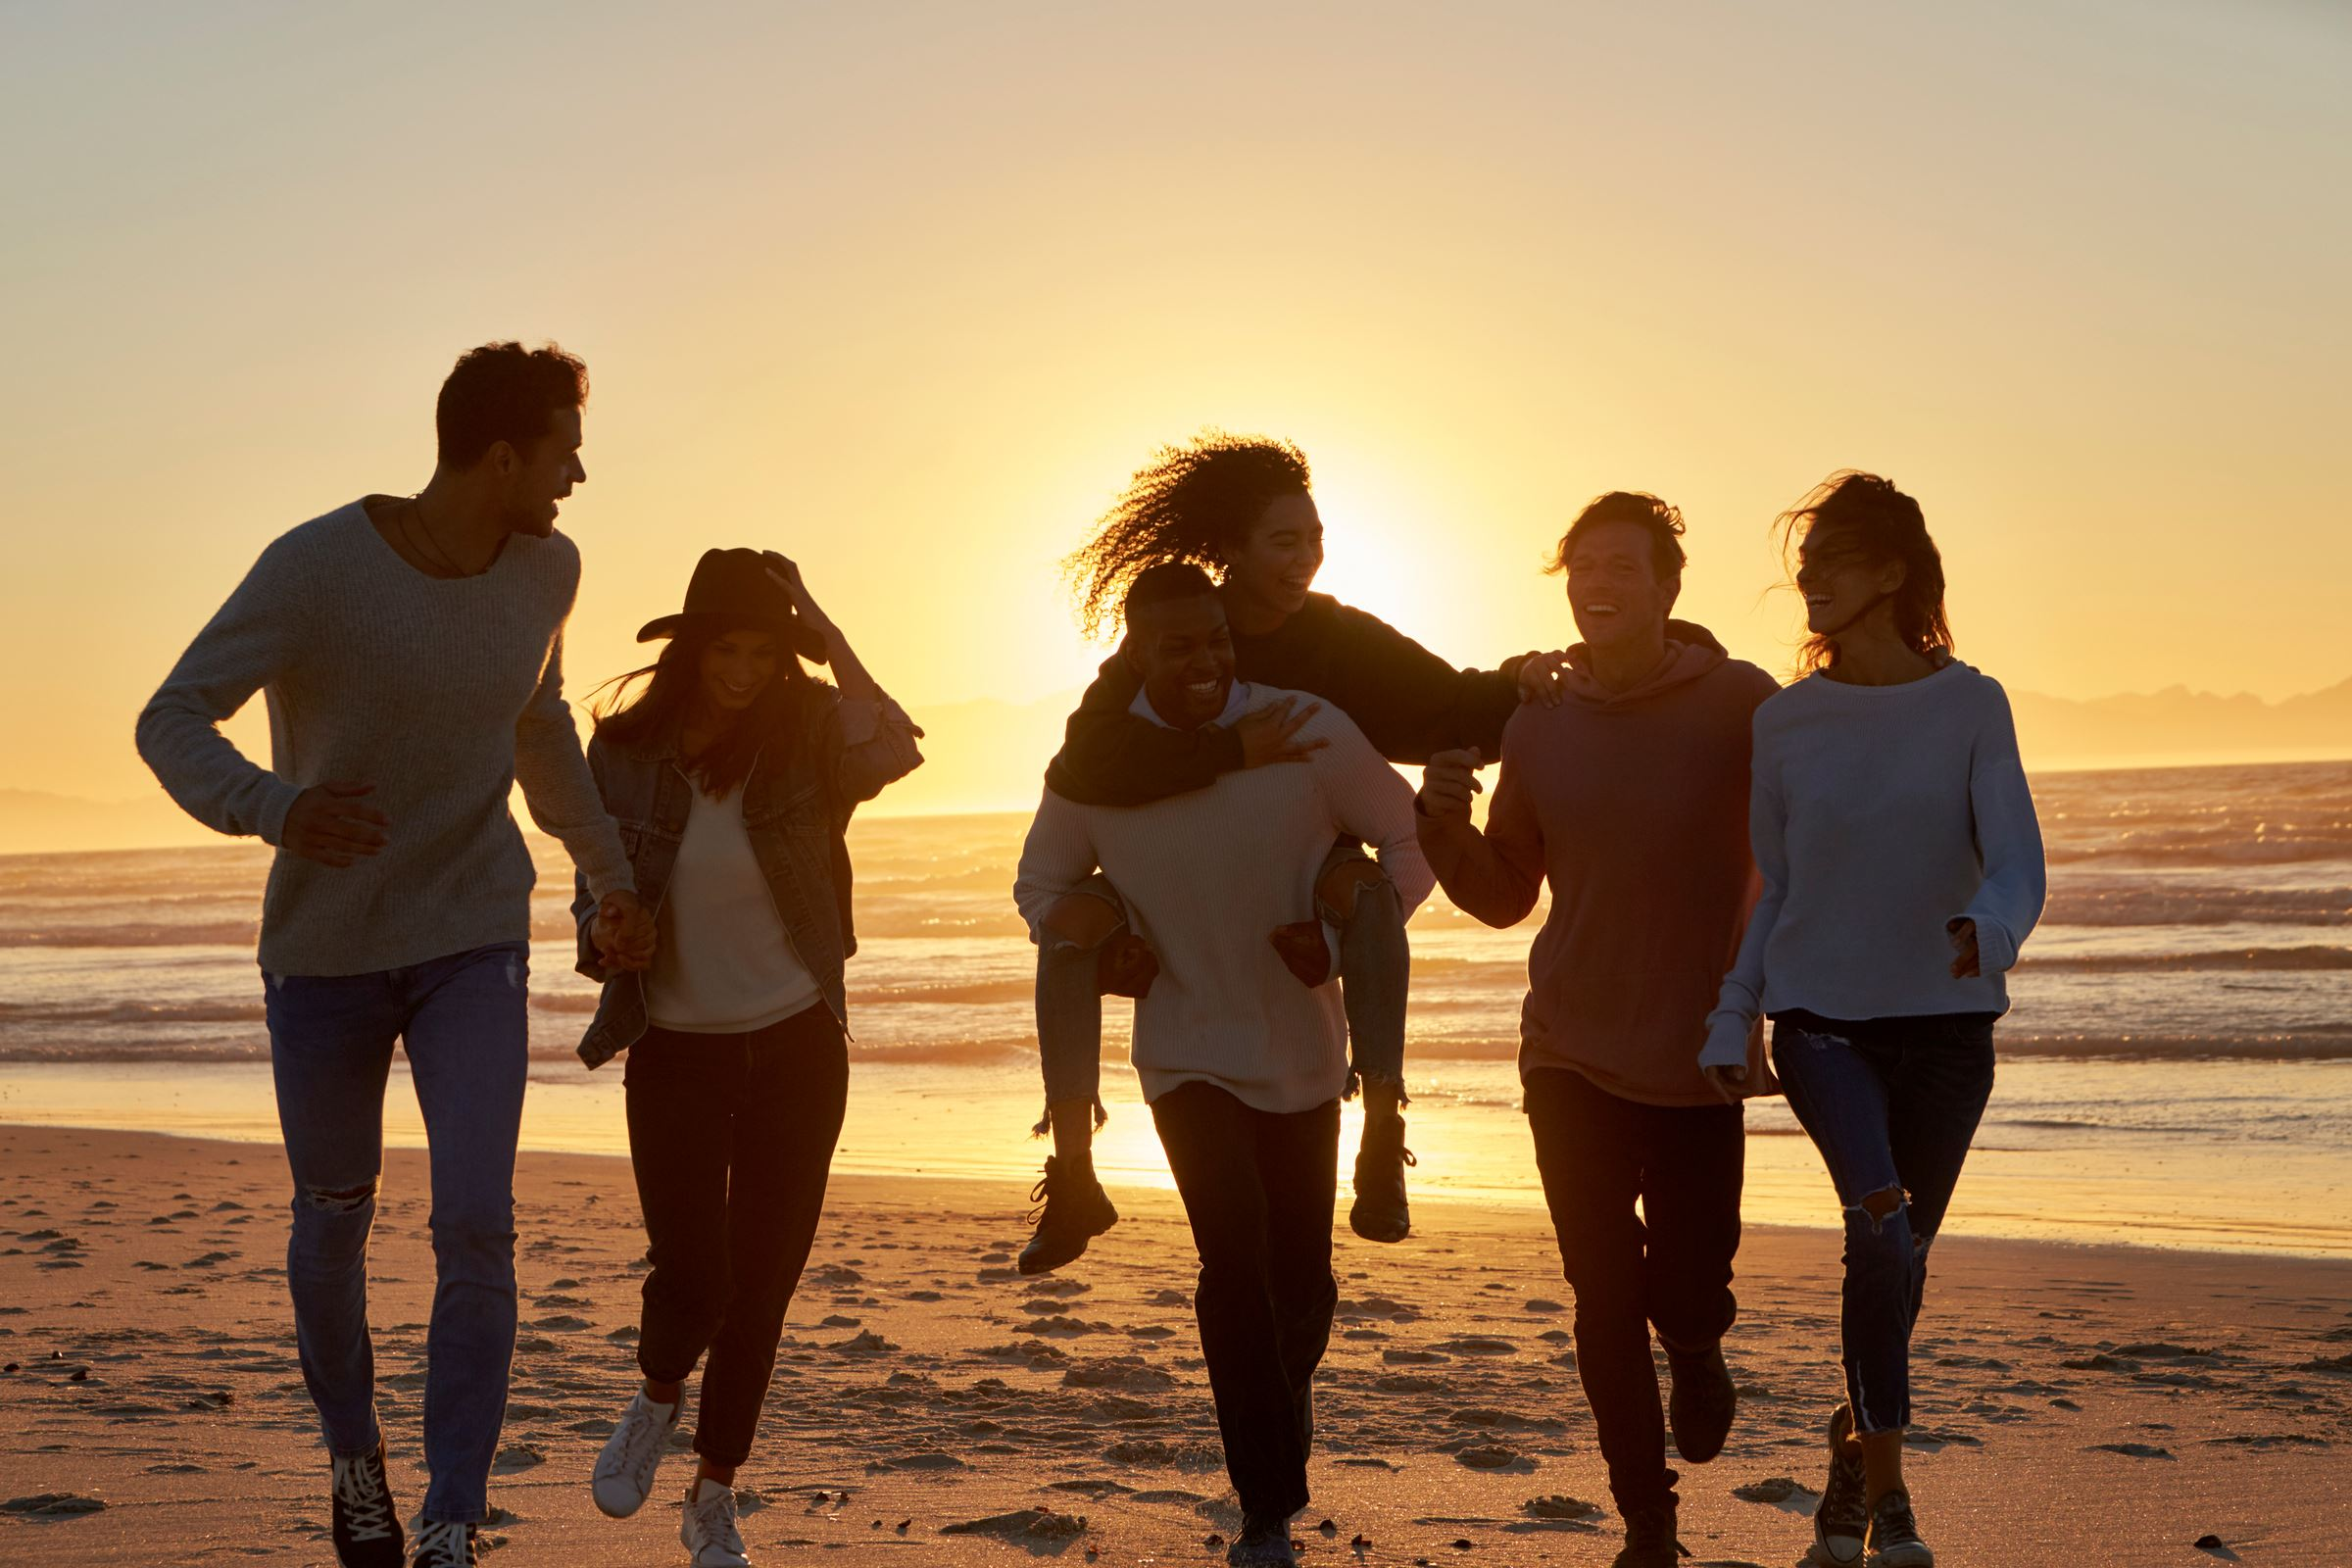 group of friends in casual clothing walking along beach at sunset